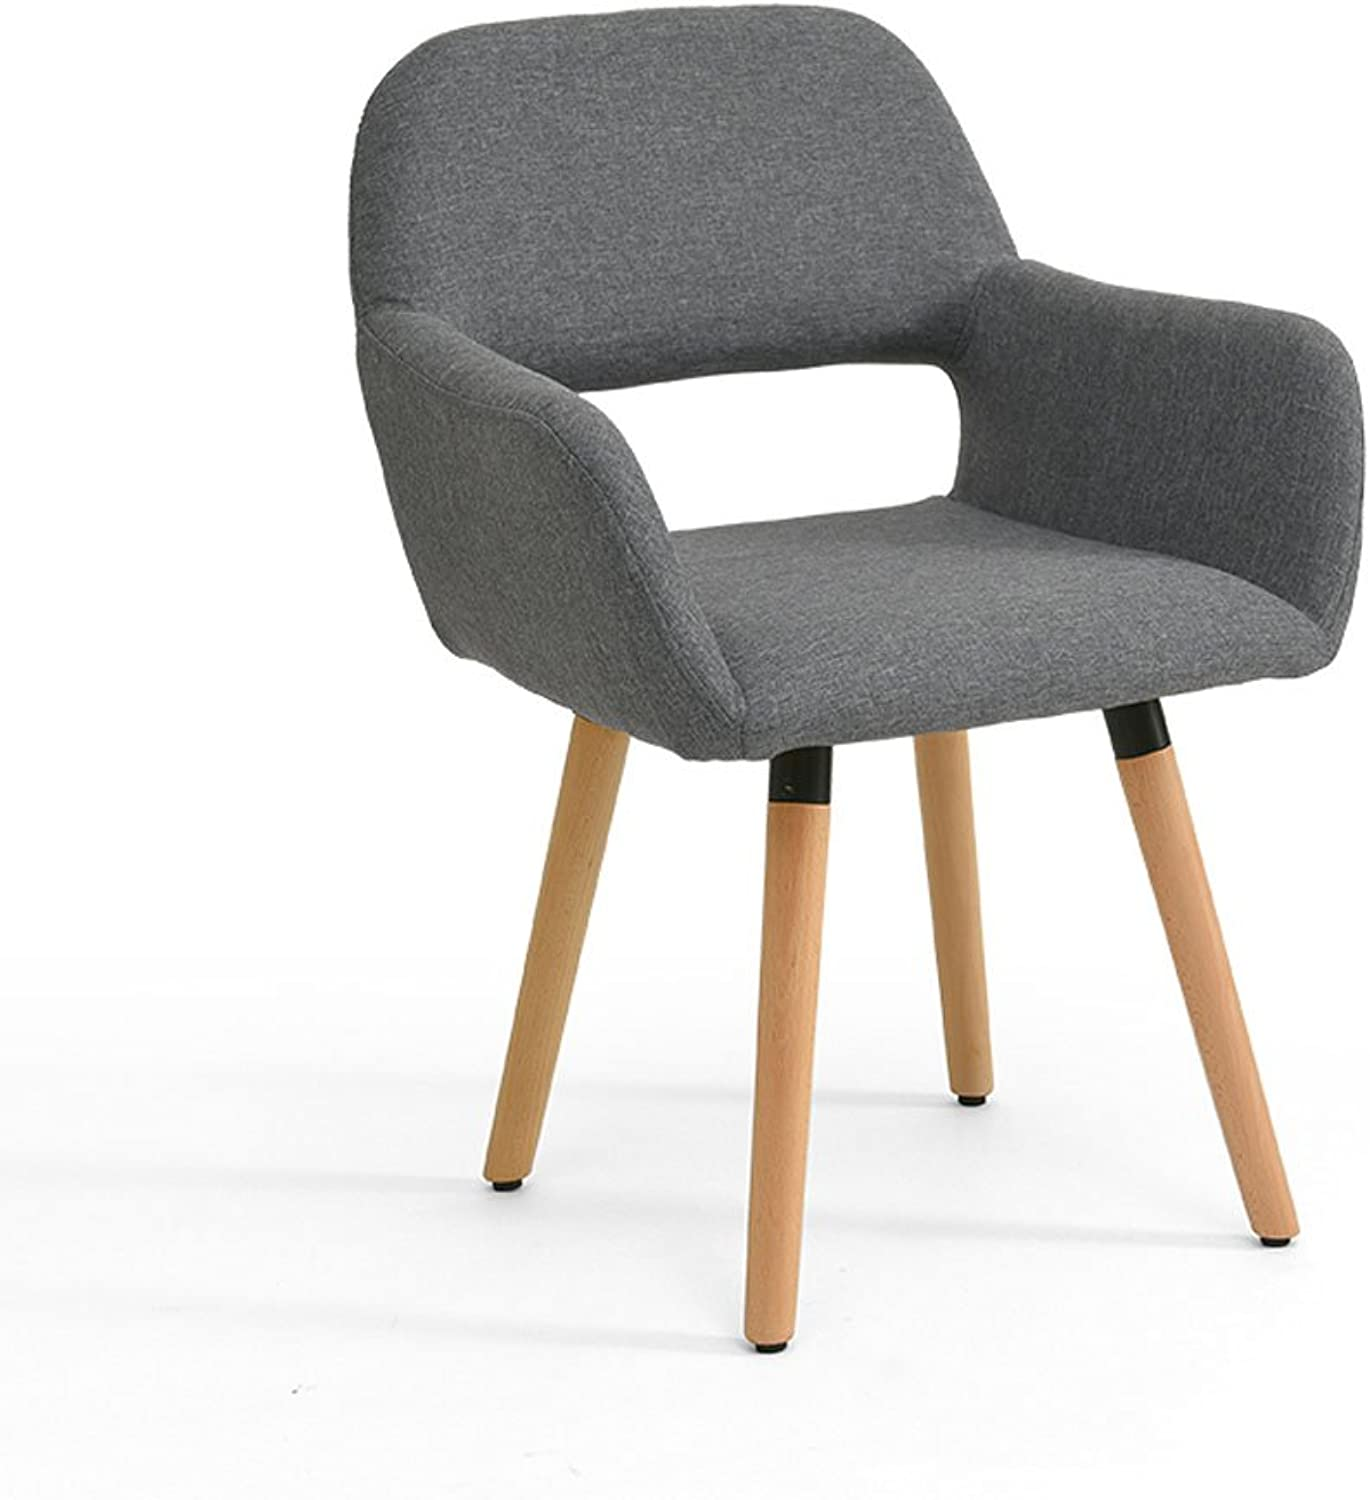 CQOZ Solid Wood Chair Simple and Modern Computer Chair Northern Europe Creative Backrest Desk and Chair Leisure Home Dining Chair 40 × 42 × 75cm Sofa Stool (color    4)